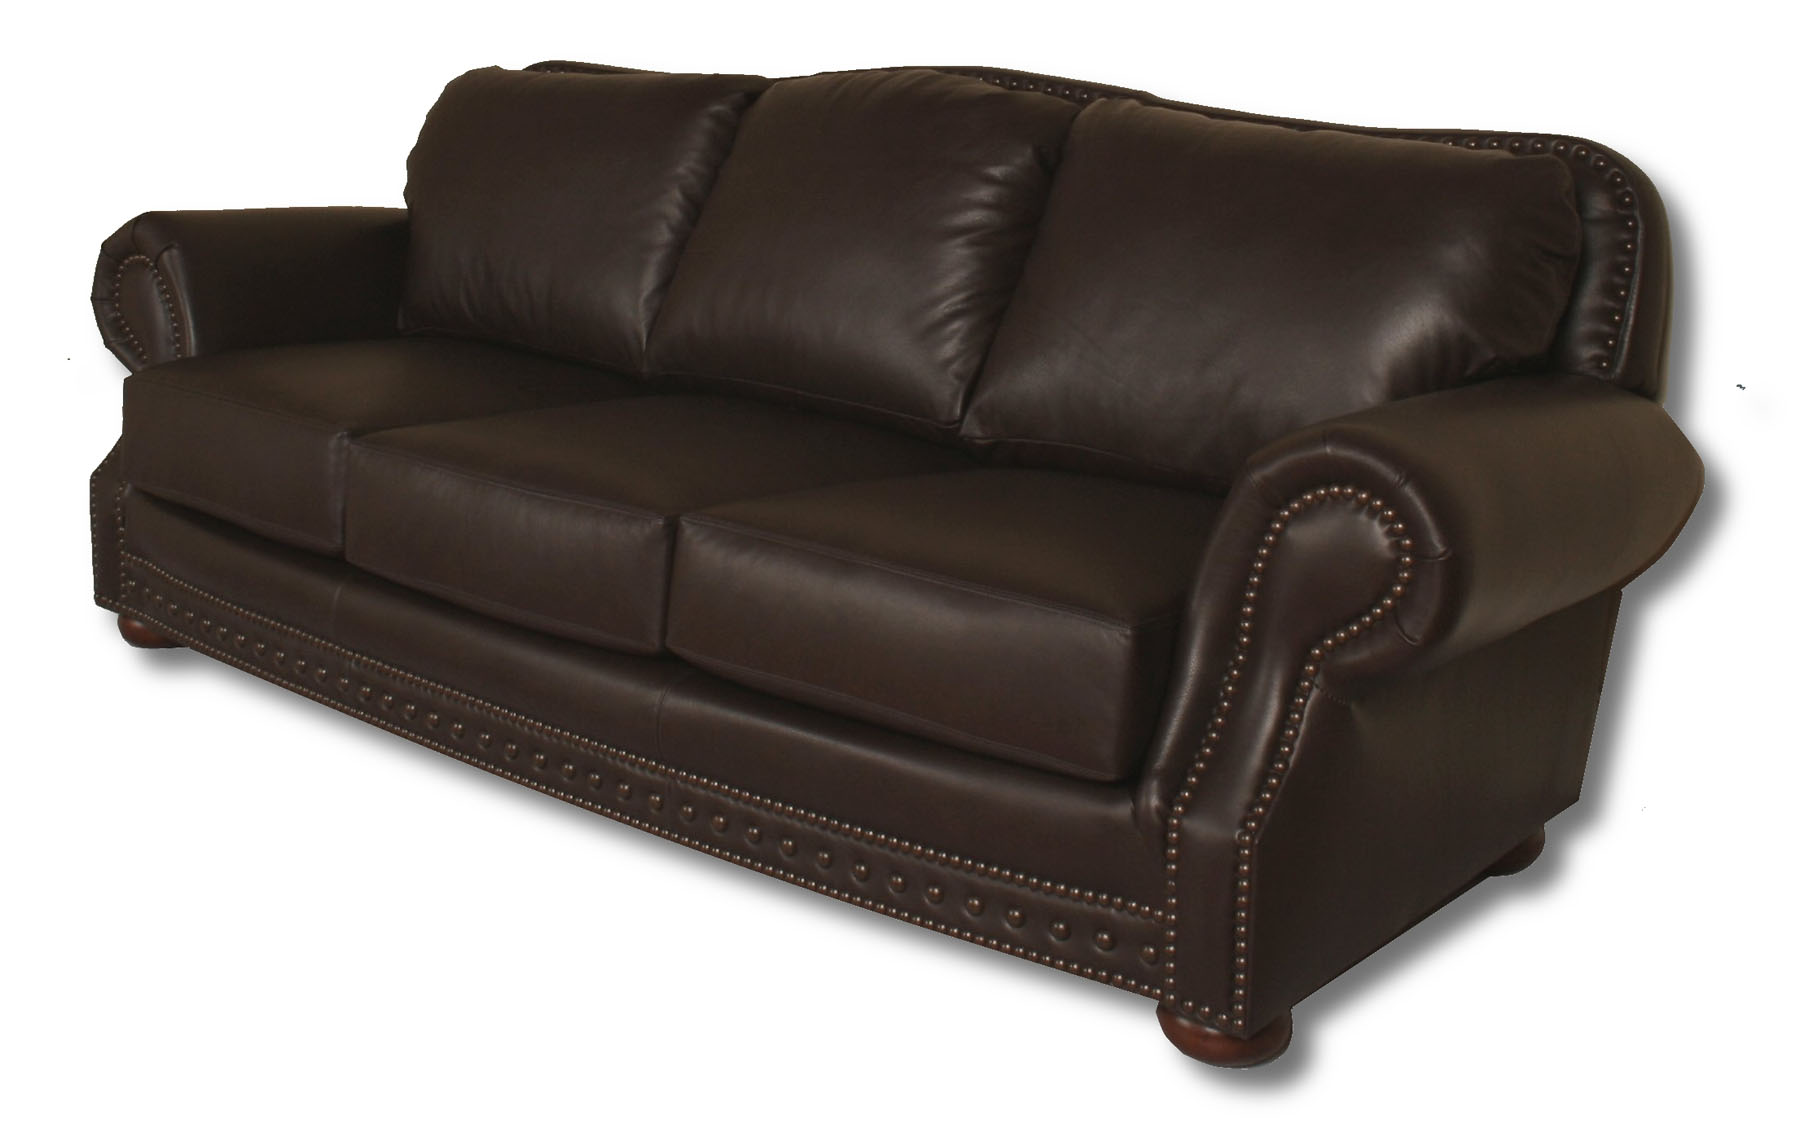 Millennium Leather Furniture